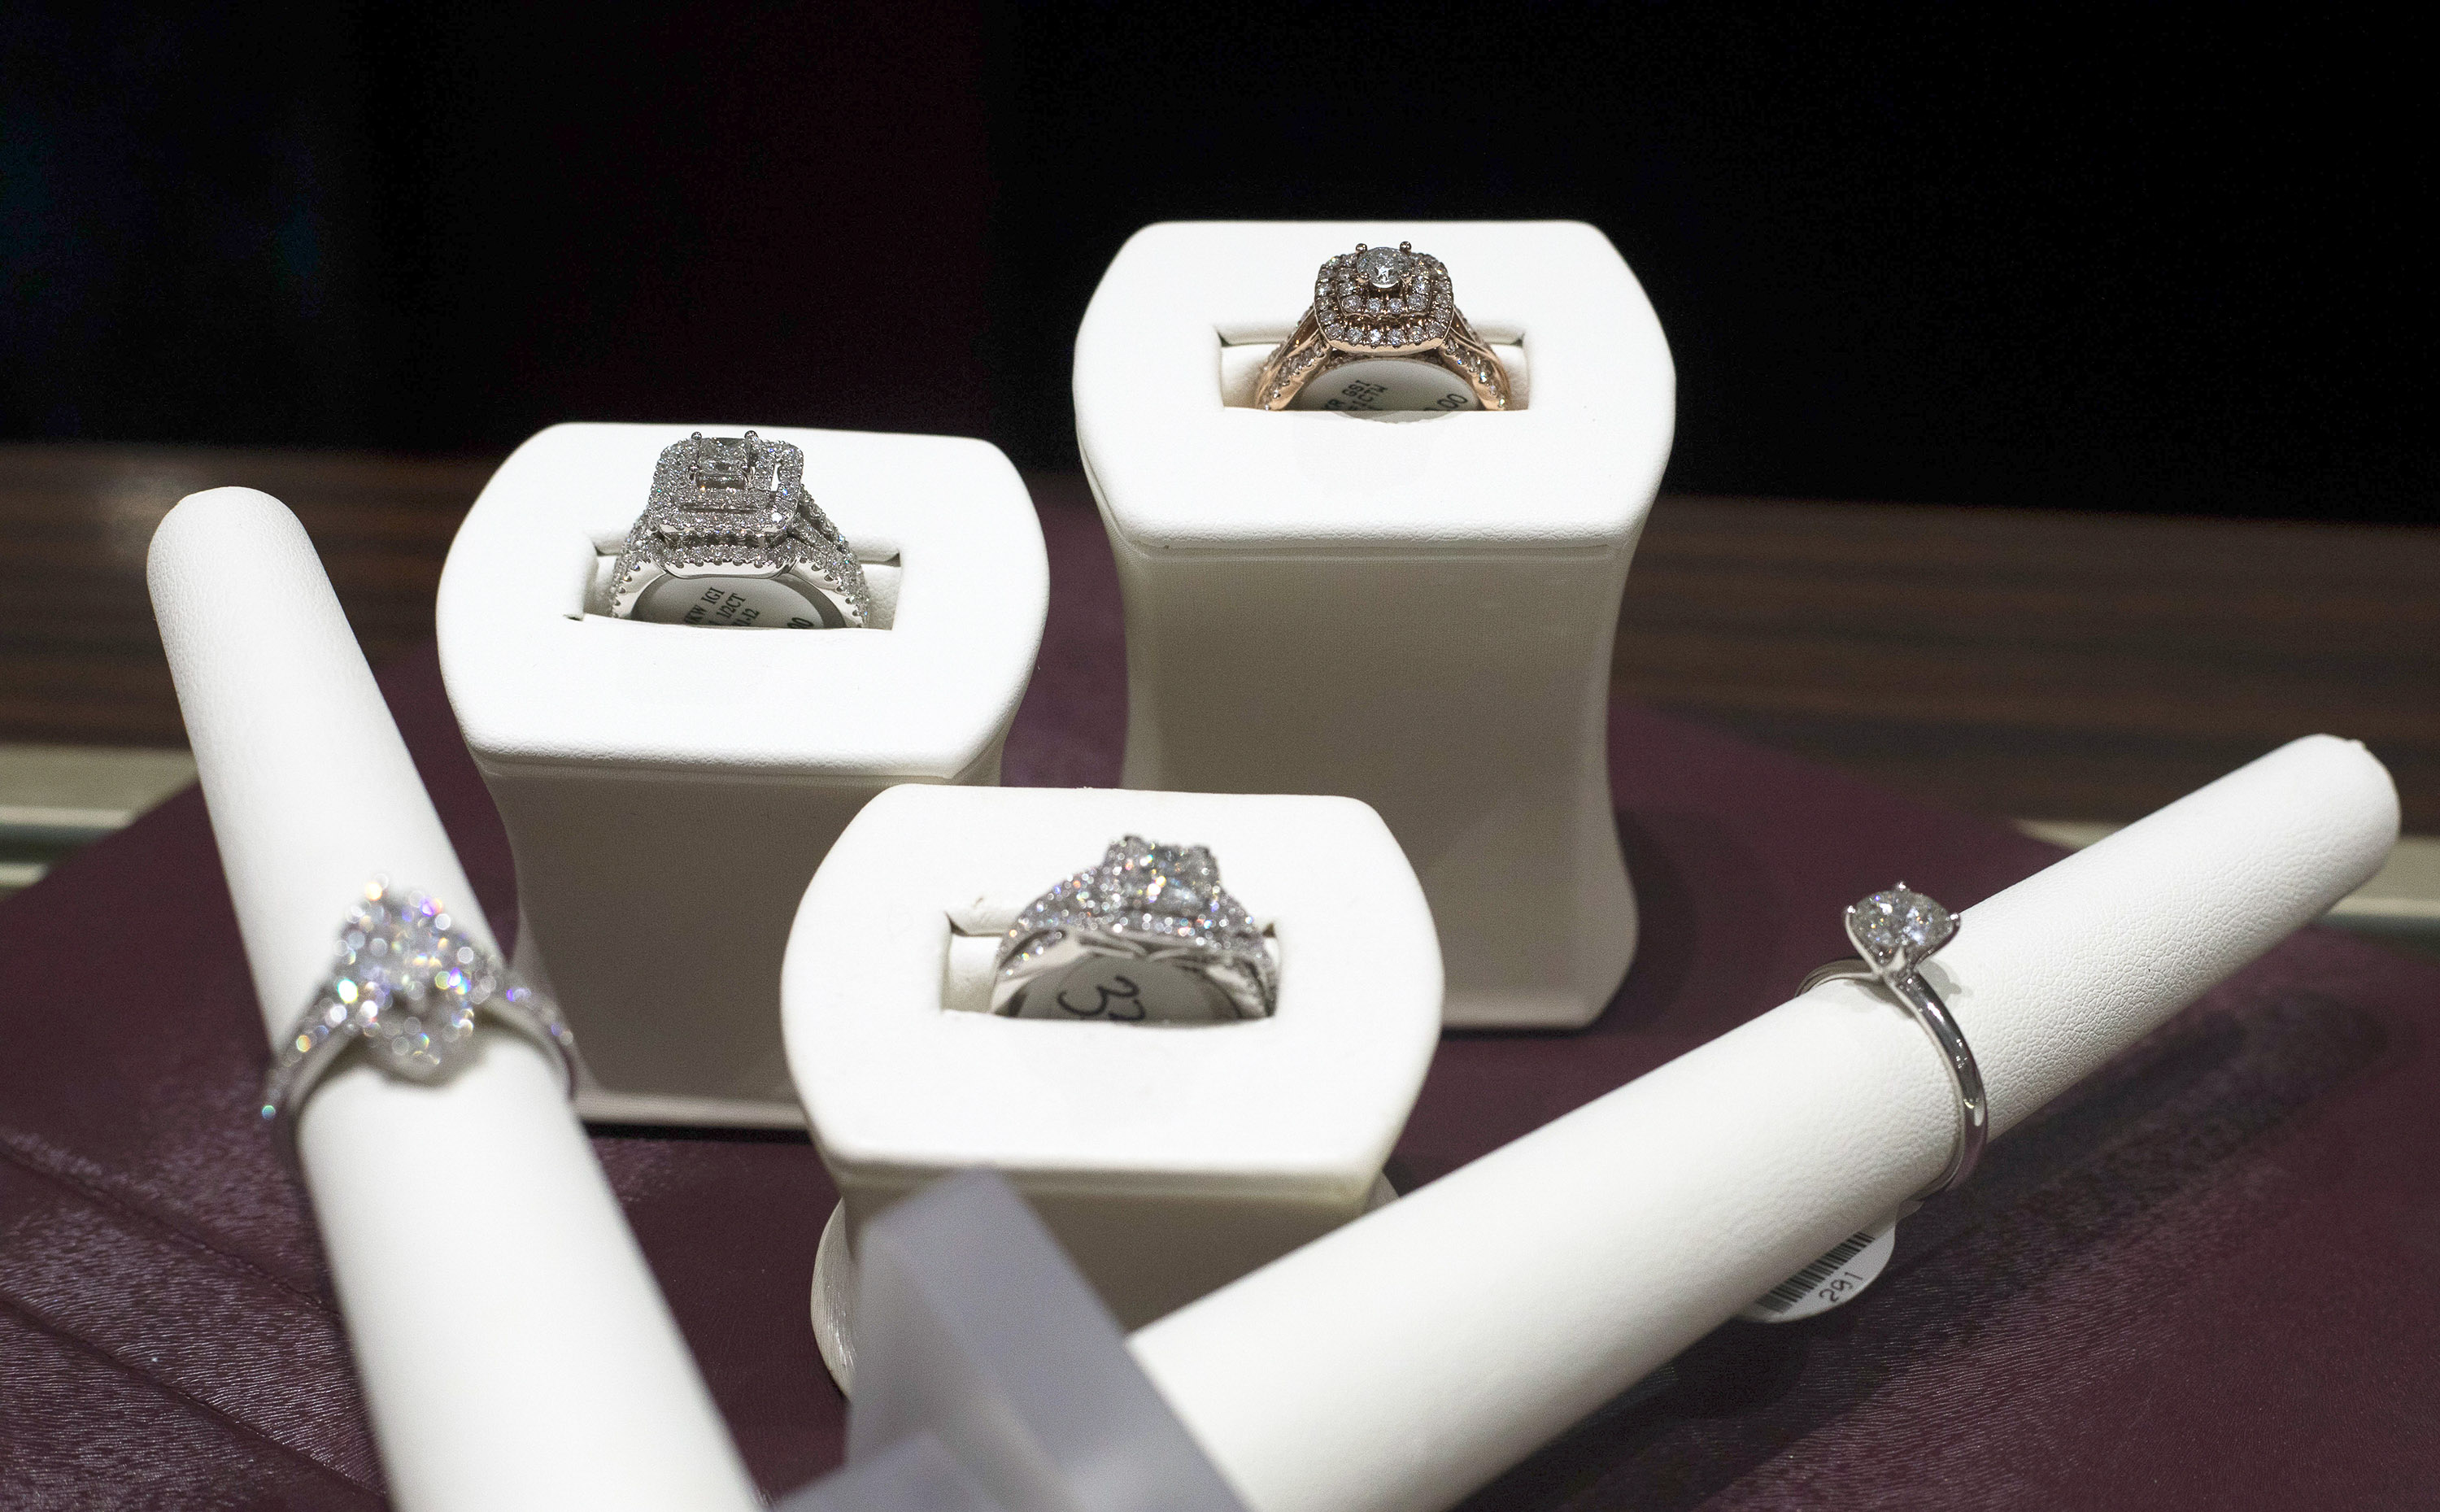 A variety of rings ranging from $3,599 to $19,999 at Helzberg Diamonds in Town East.